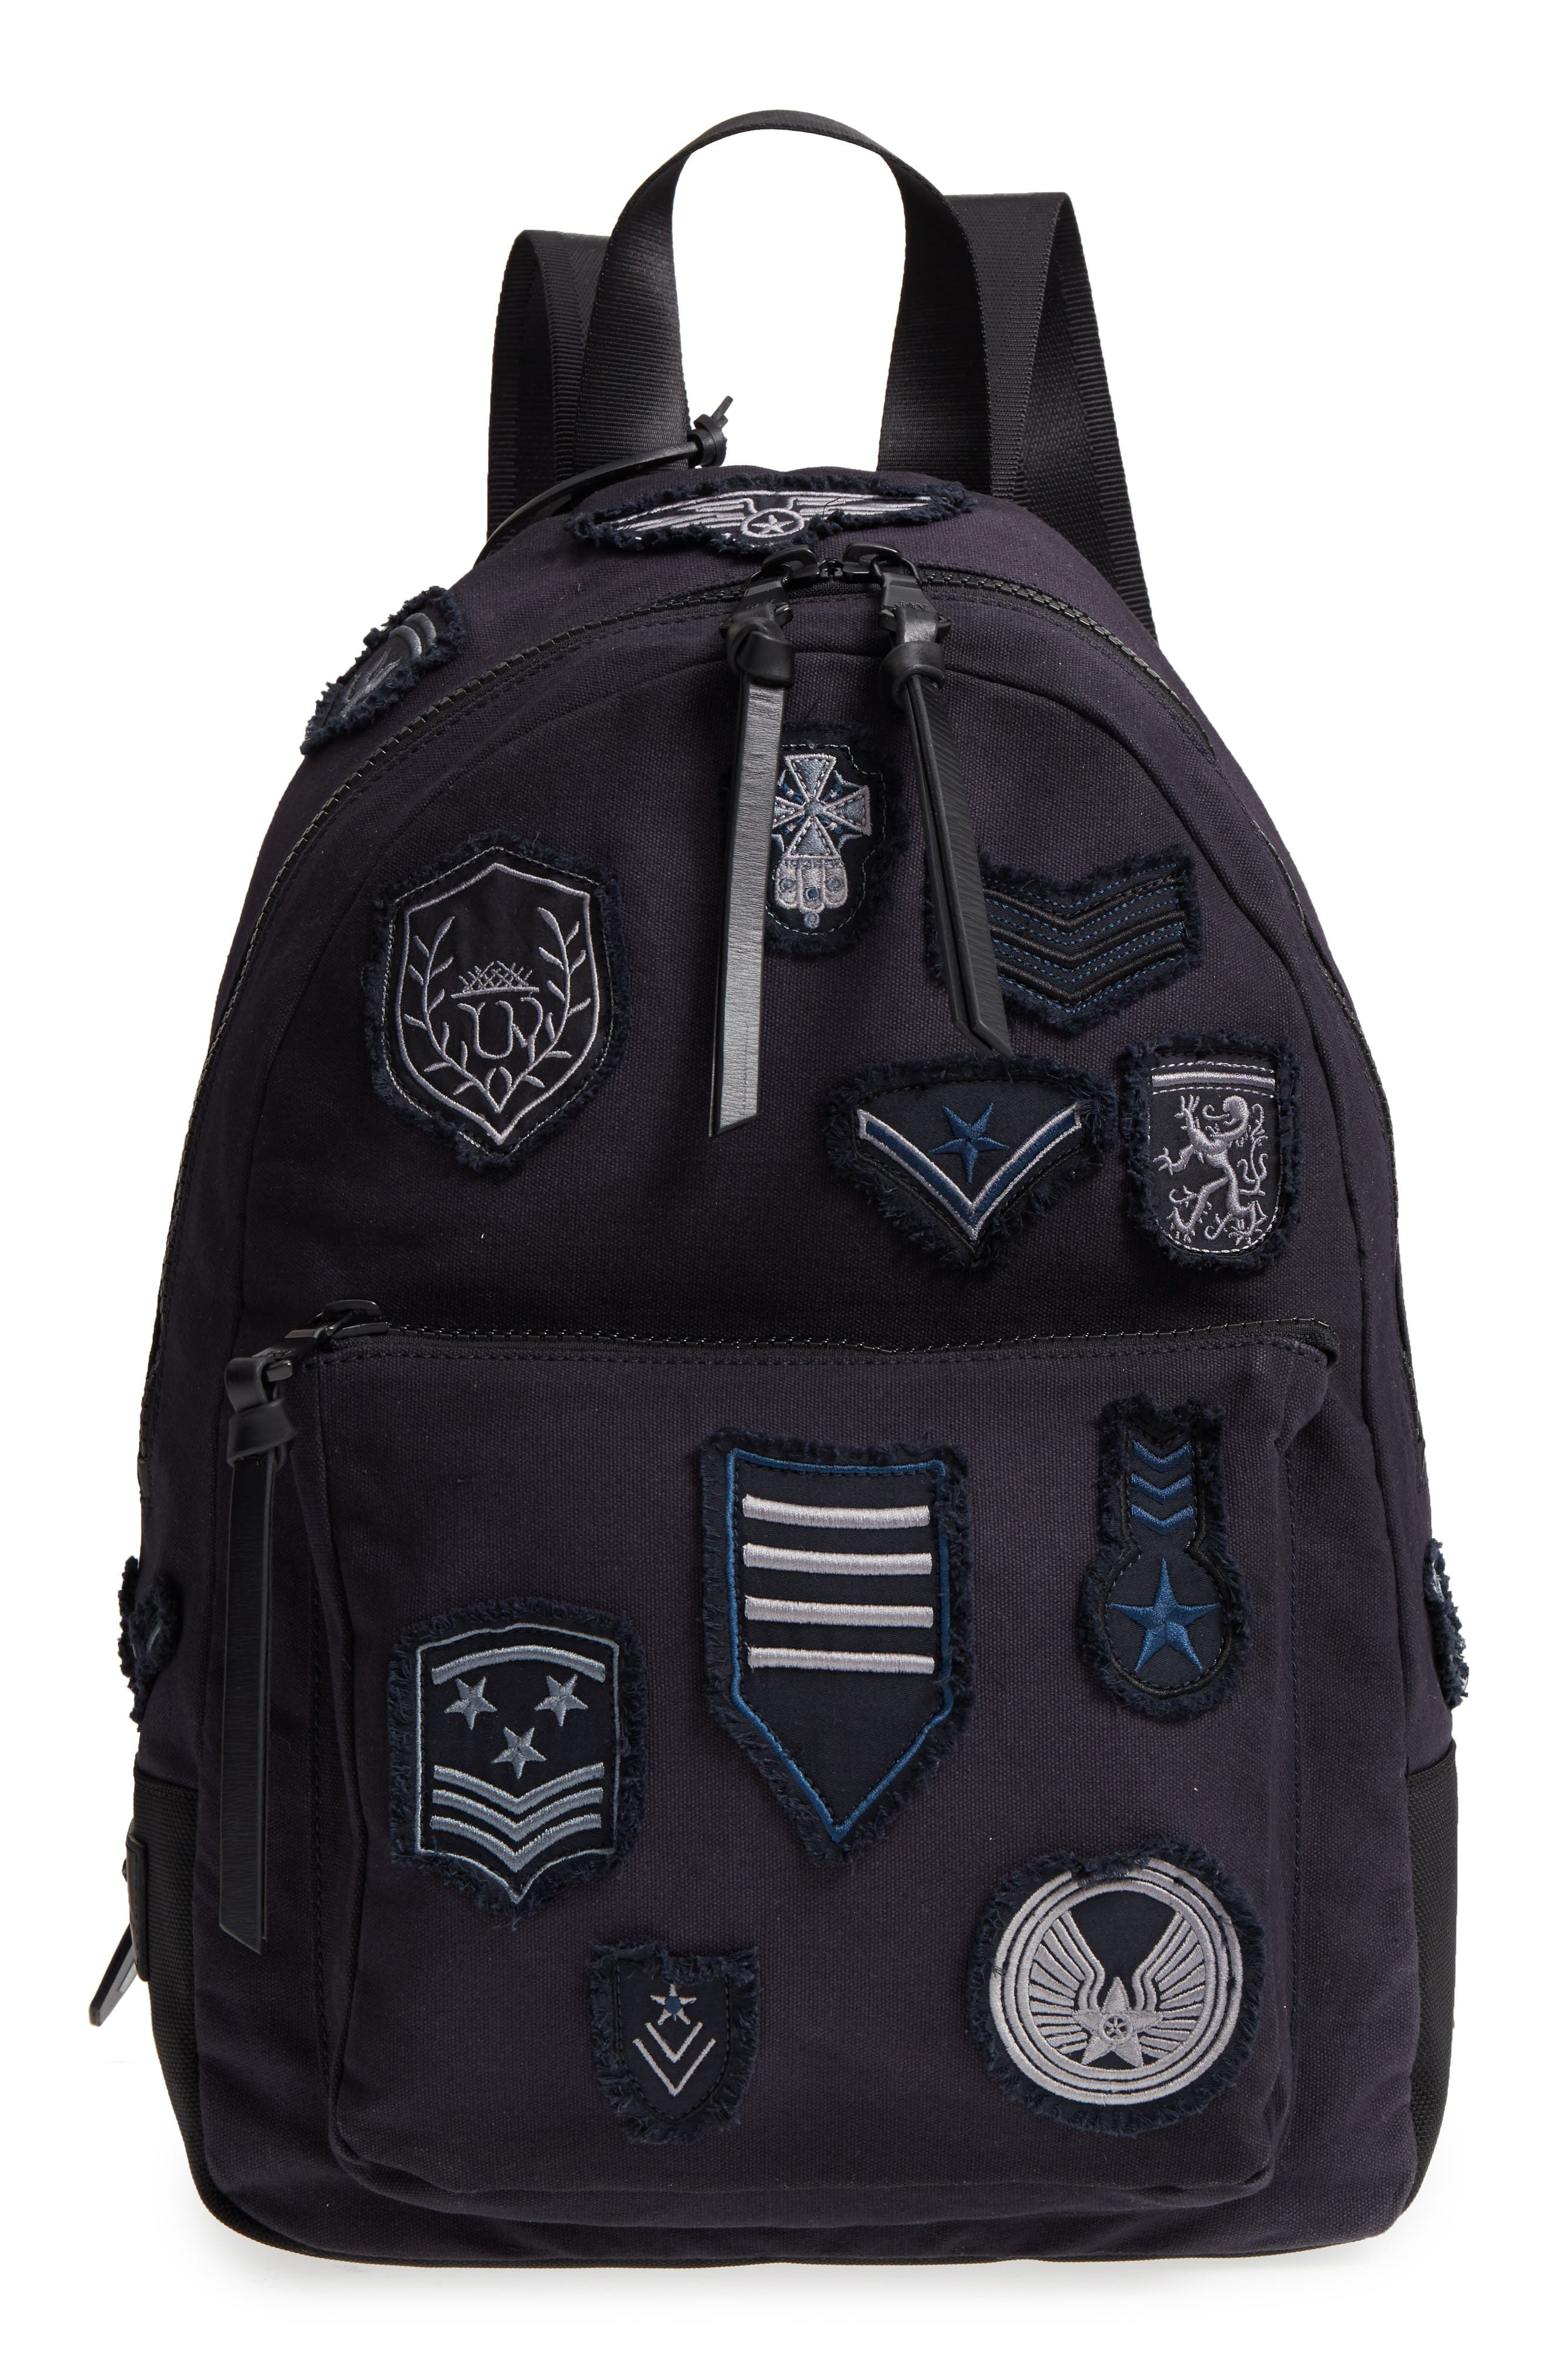 Gibson Patch Backpack,                             Main thumbnail 1, color,                             Midnight